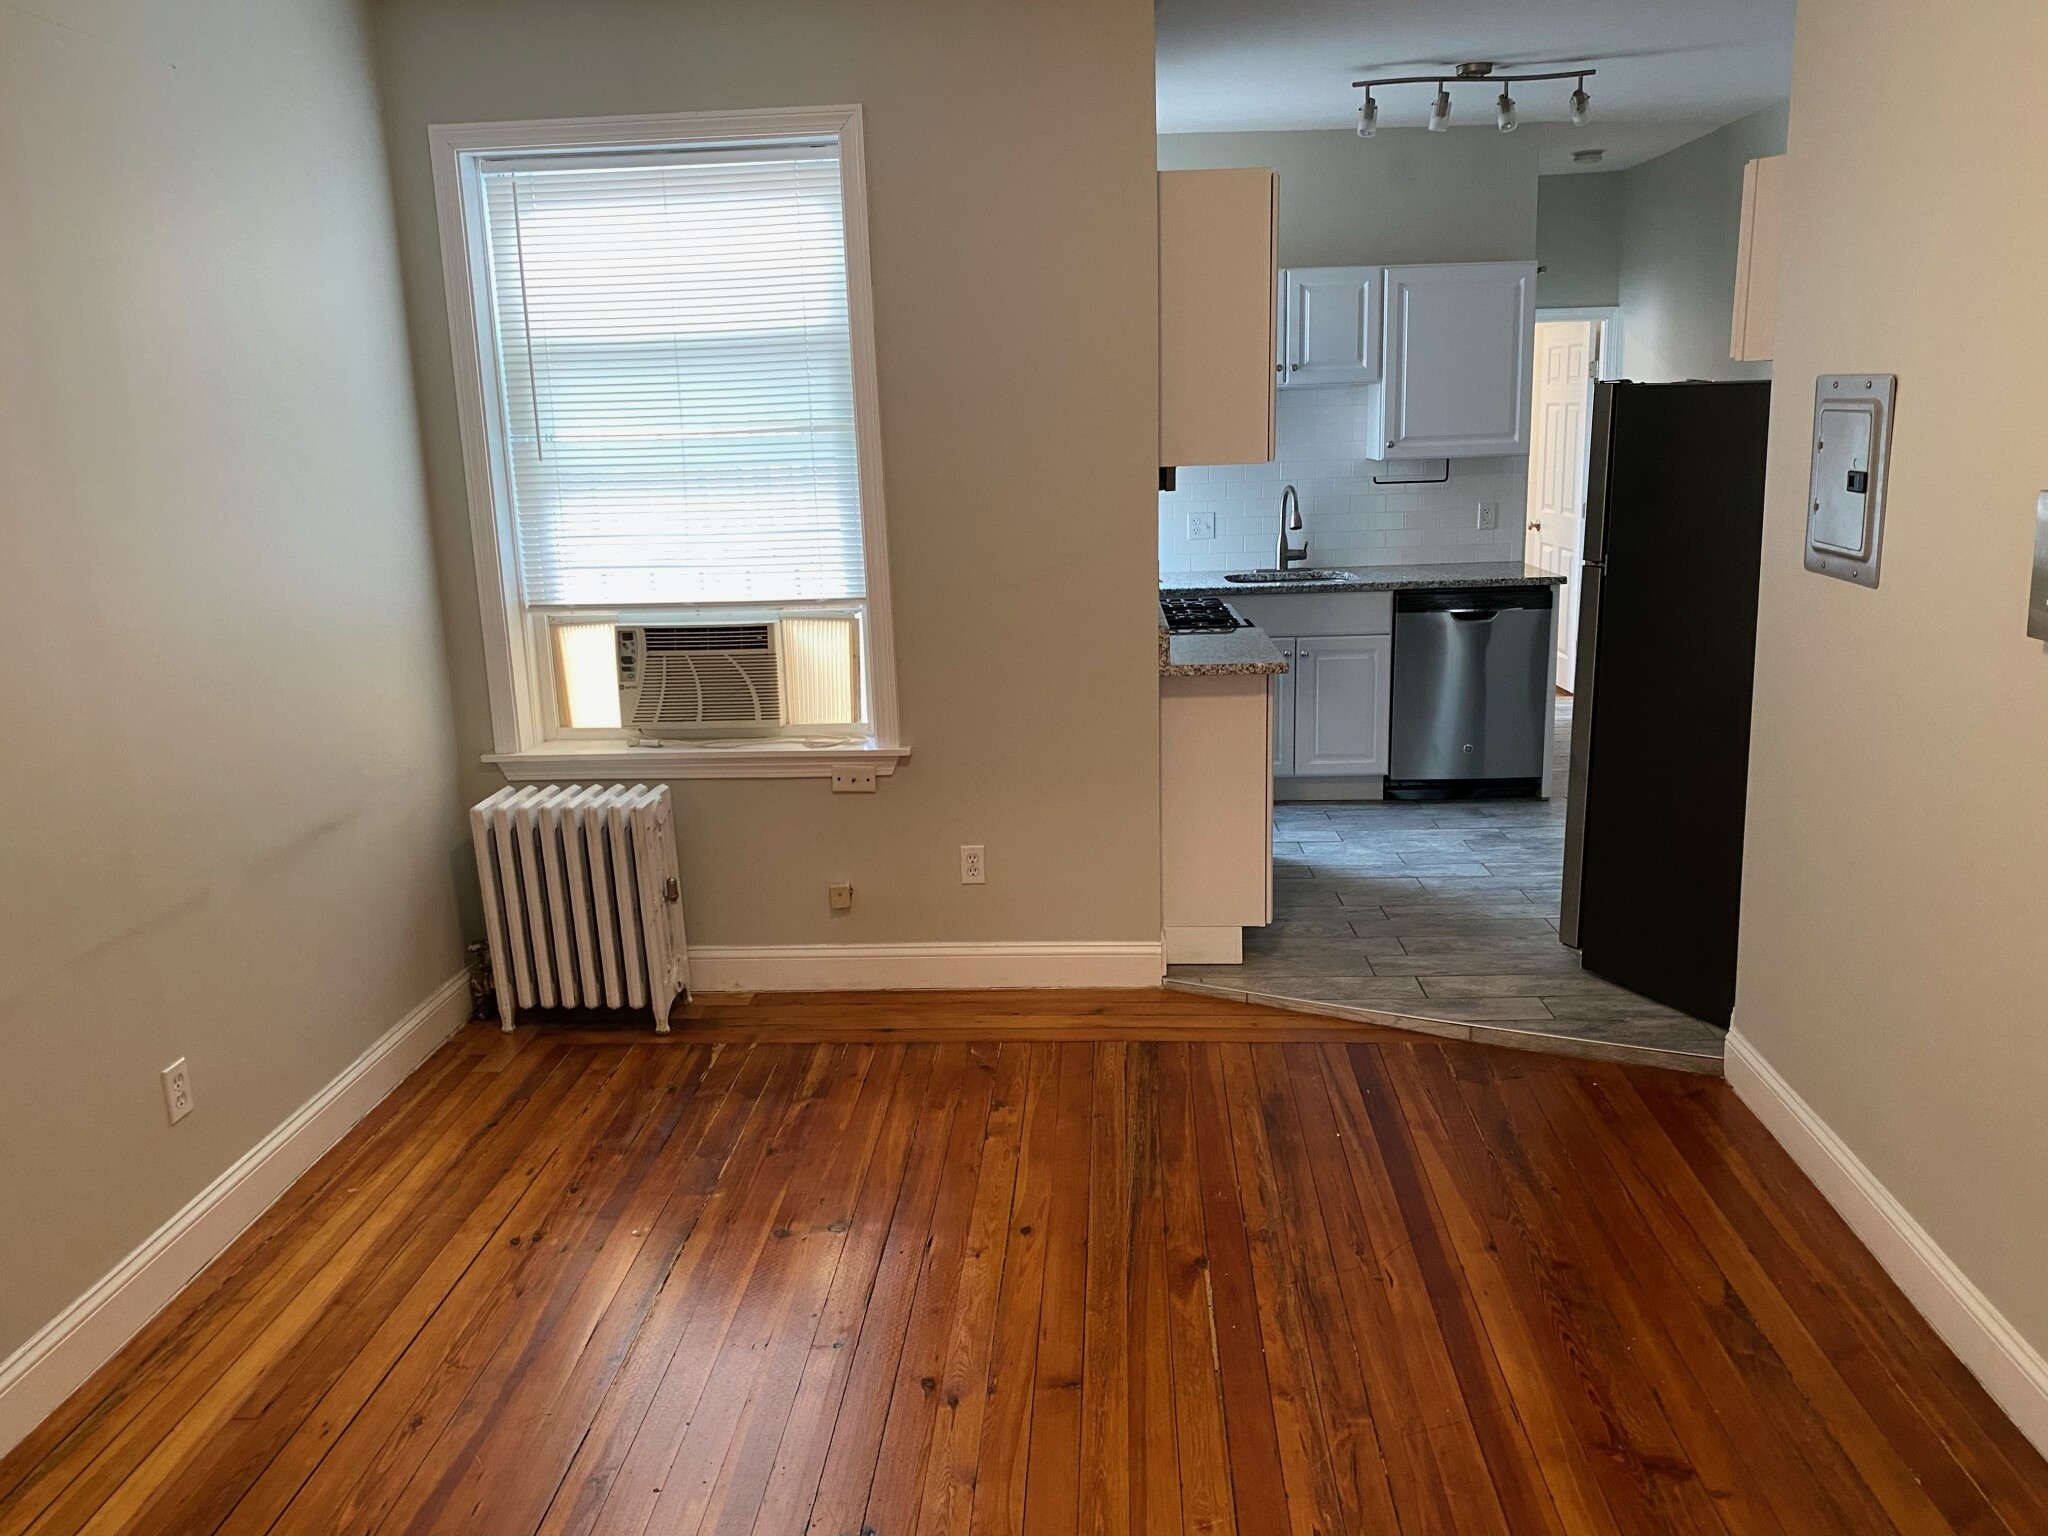 2.5 Beds, 1 Bath apartment in Boston, Beacon Hill for $2,200